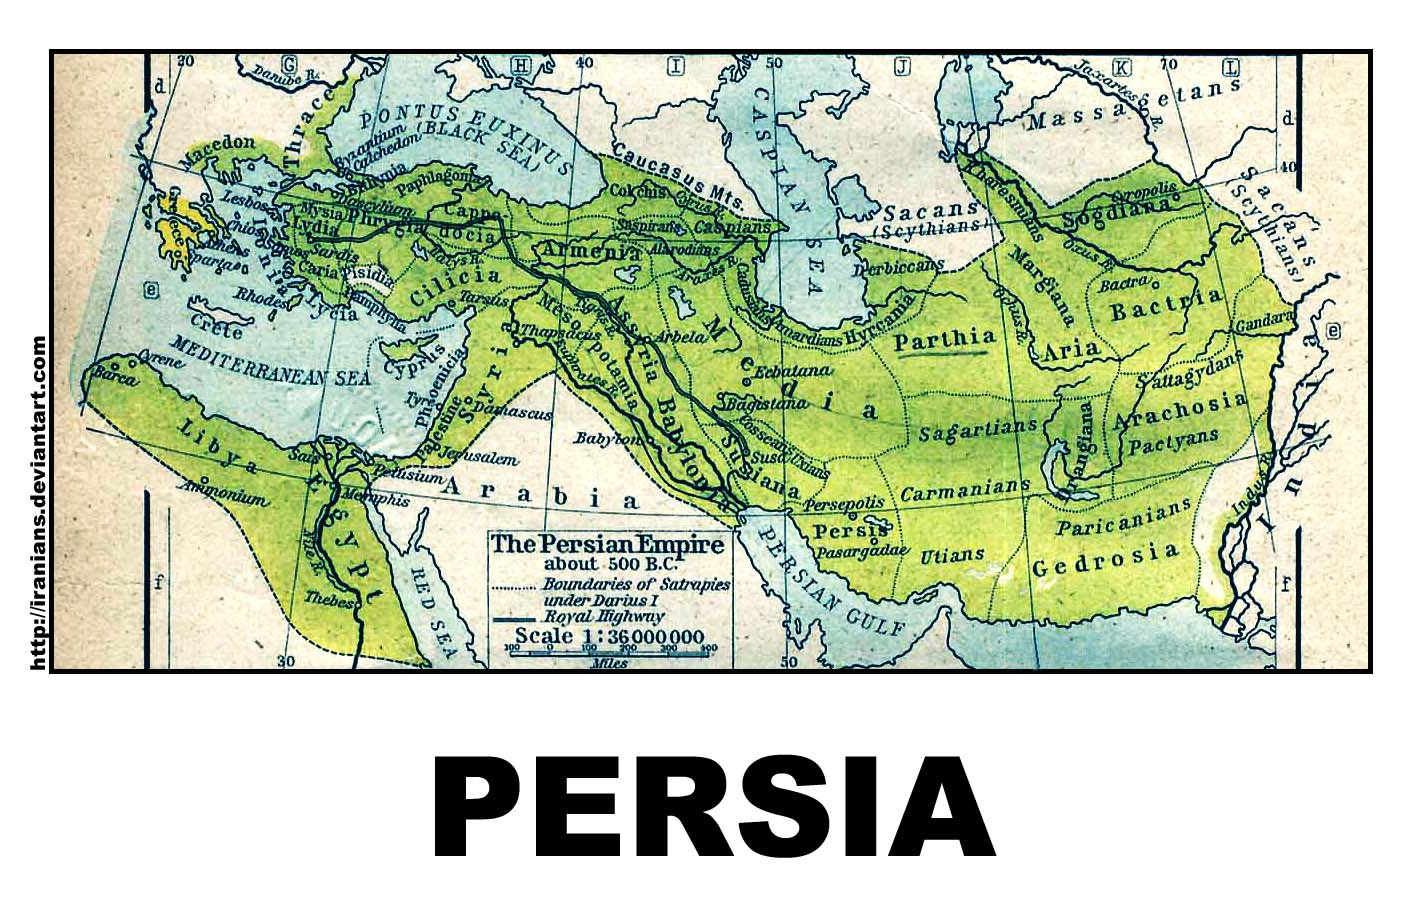 the persian empire The ancient persian empire originated in the region currently known as iran at its peak, the persian empire encompassed most of the middle east, asia minor and parts of central asia and india.